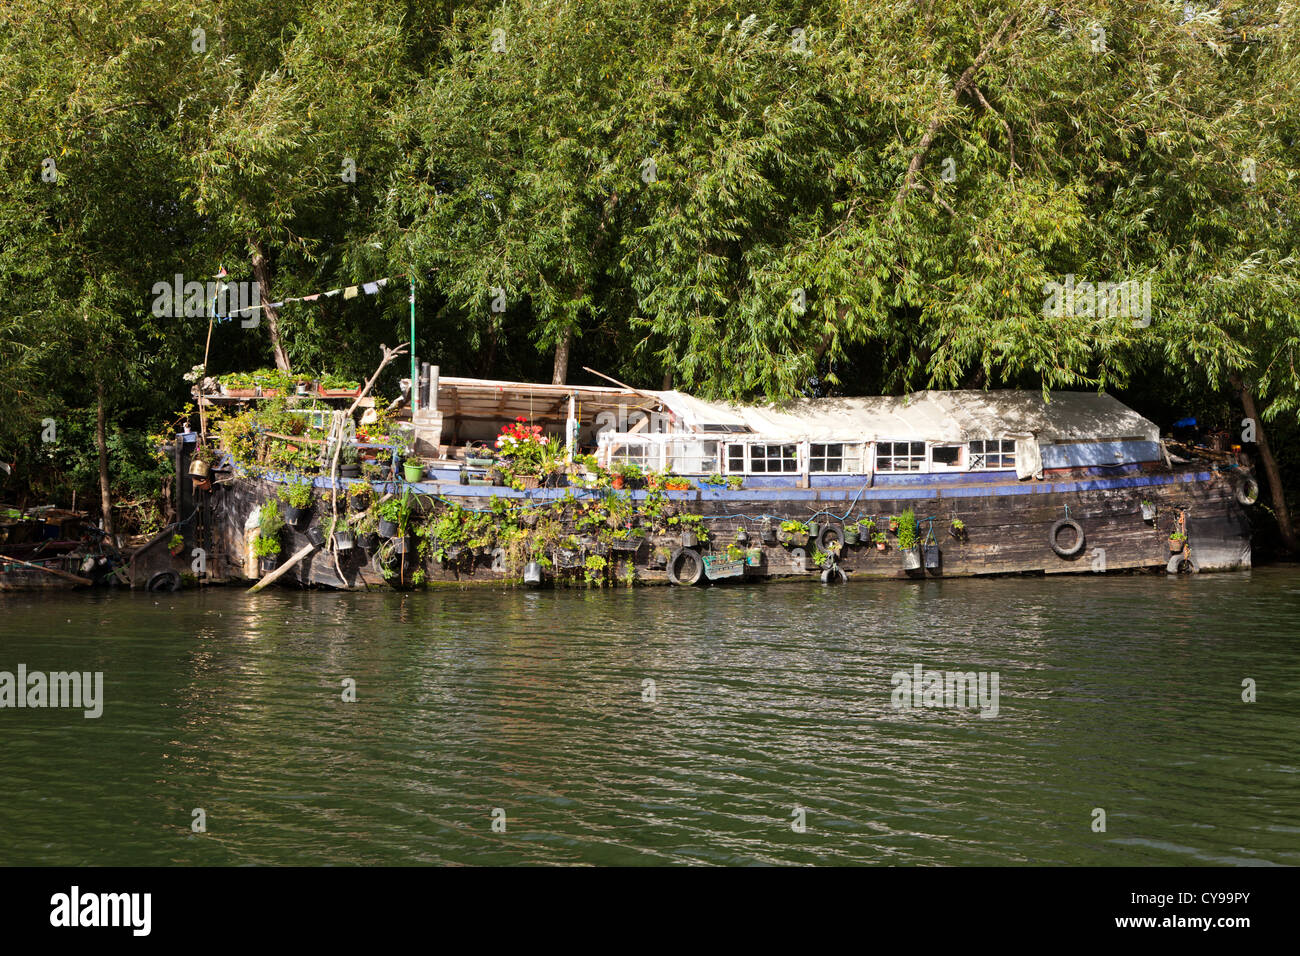 Decaying boat on the River Thames near Reading, Berkshire, UK - Stock Image